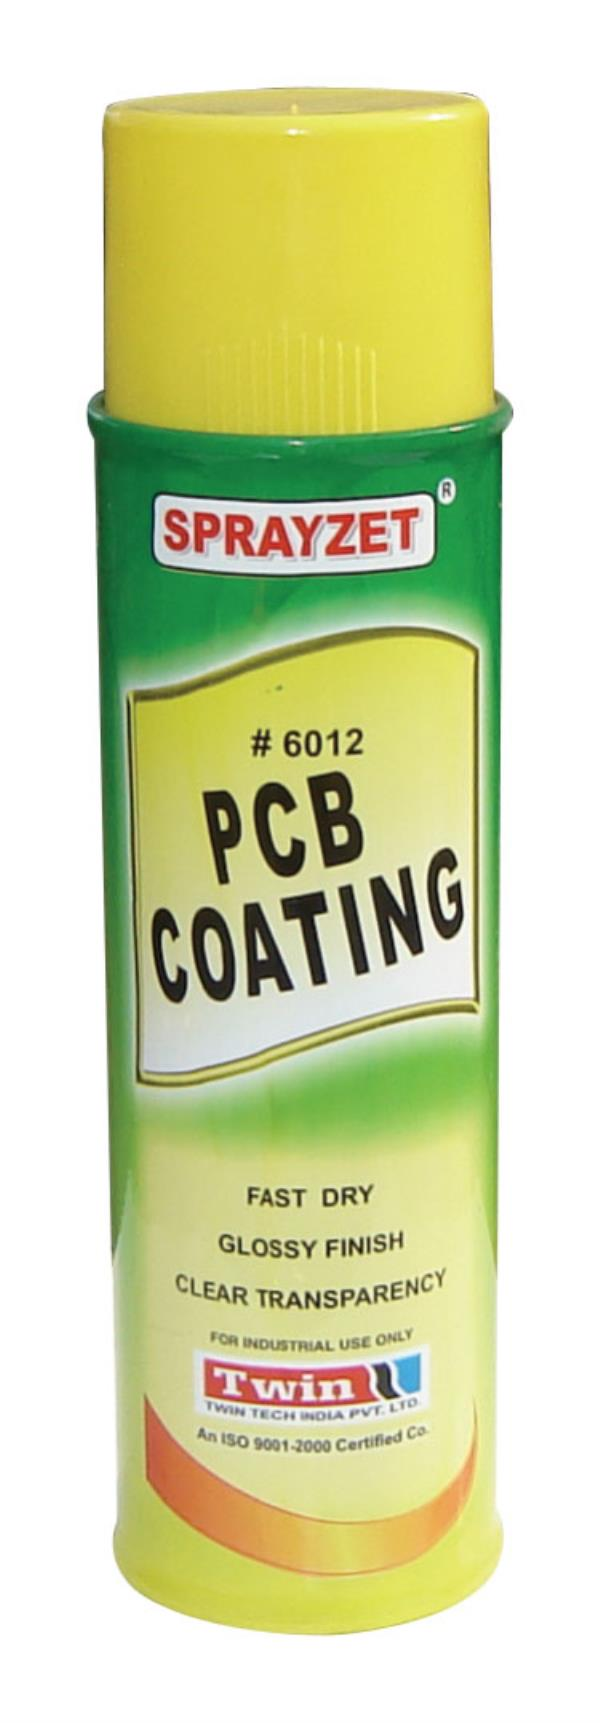 We are manufacturing company of Industrial Maintenance Aerosols, Aerosol Spray, Industrial Aerosol in Ghaziabad India.  for more details you can visit www.twinindia.com or contact us on +91 9310052700   #6012 PCB COATING: Single component a - by Twin Tech India Pvt Ltd @ 9310052700, Ghaziabad